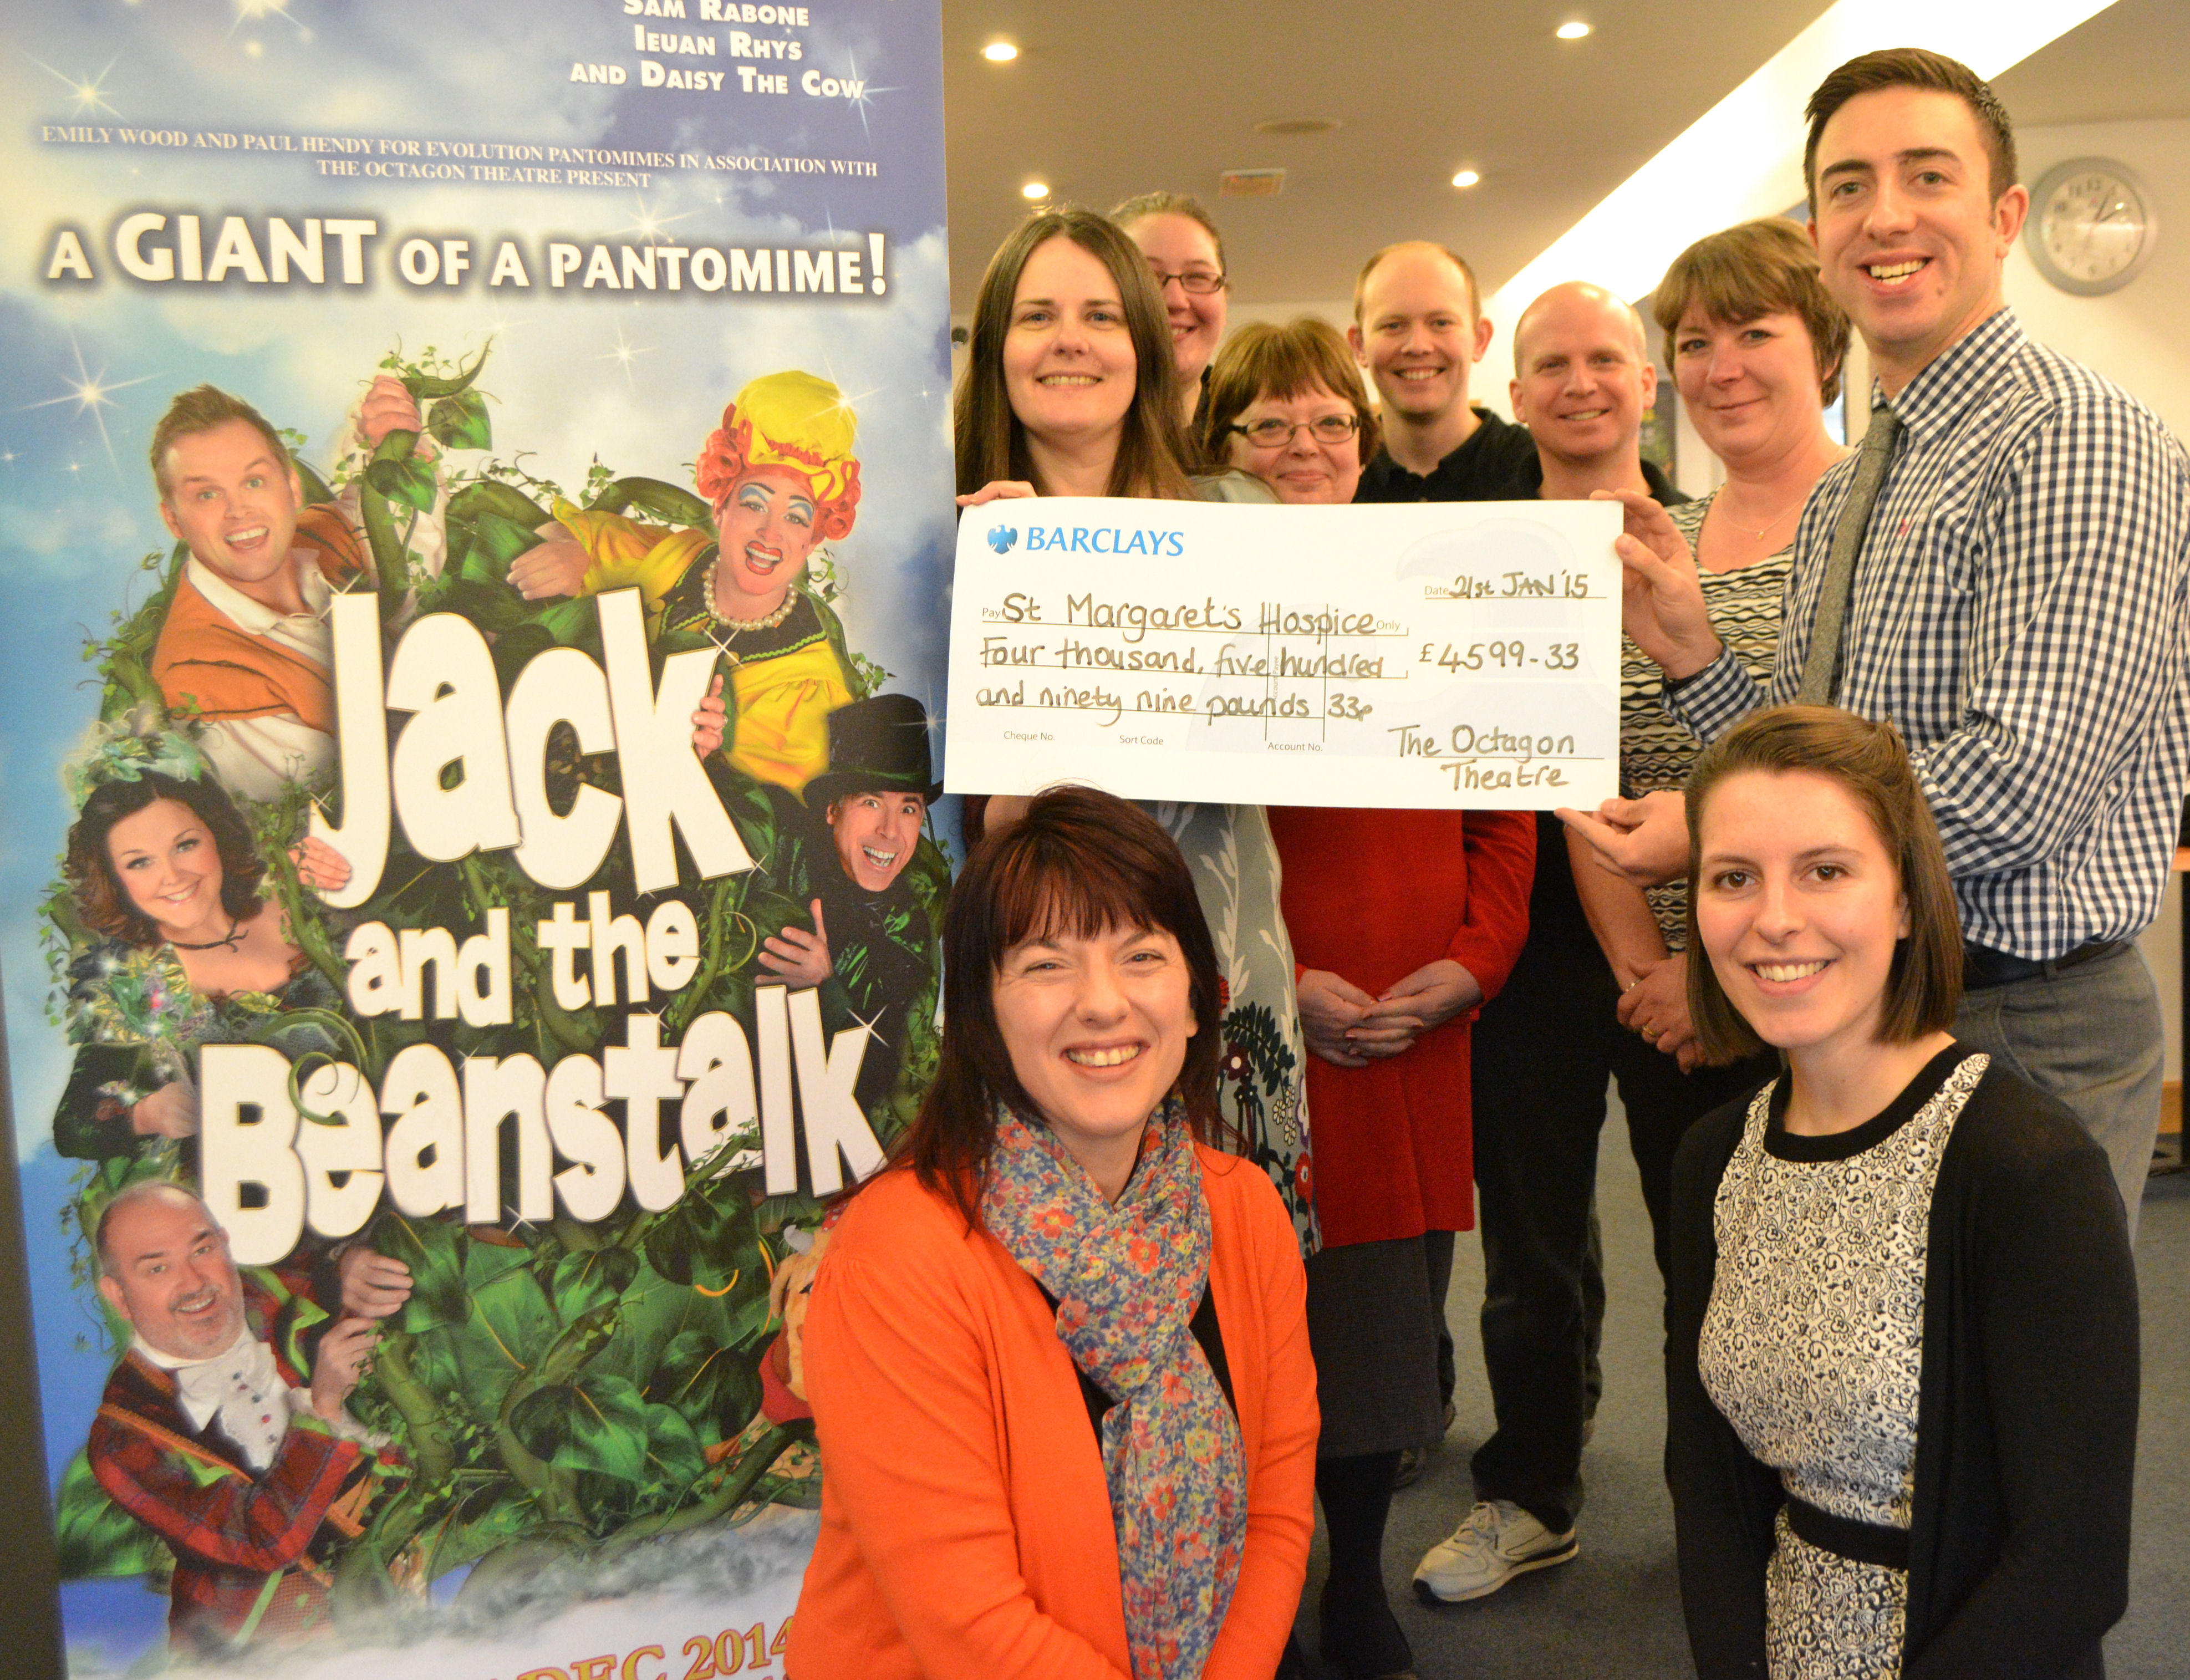 Octagon Theatre Pantomime Bucket Collection Raises Money for Charitable Causes*